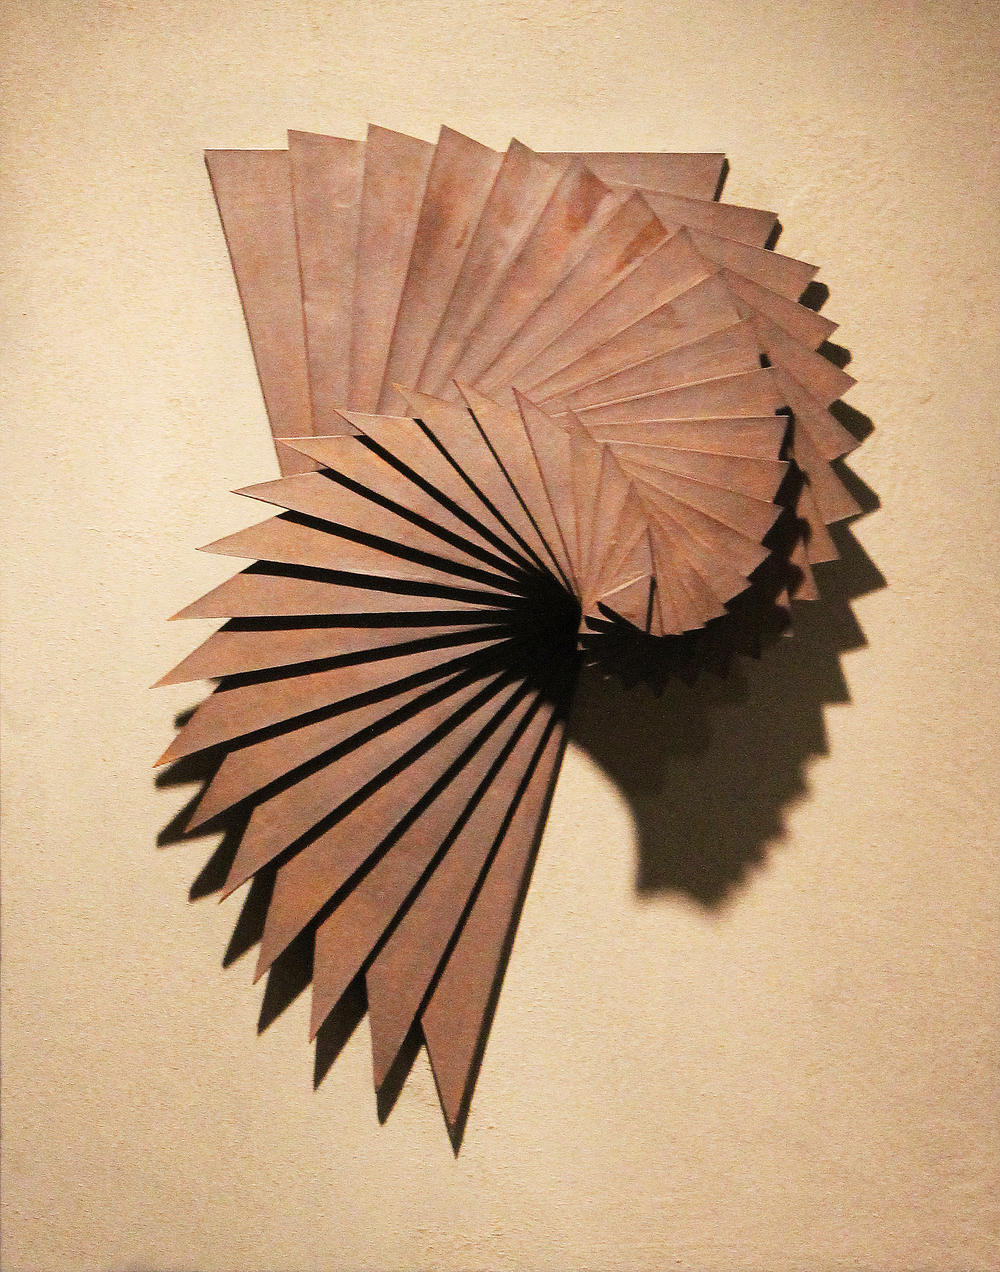 Harmonic Geometry II  |  22 x 12 x 9 inches  | Stoneware, Stained birch, Sand  |  2015